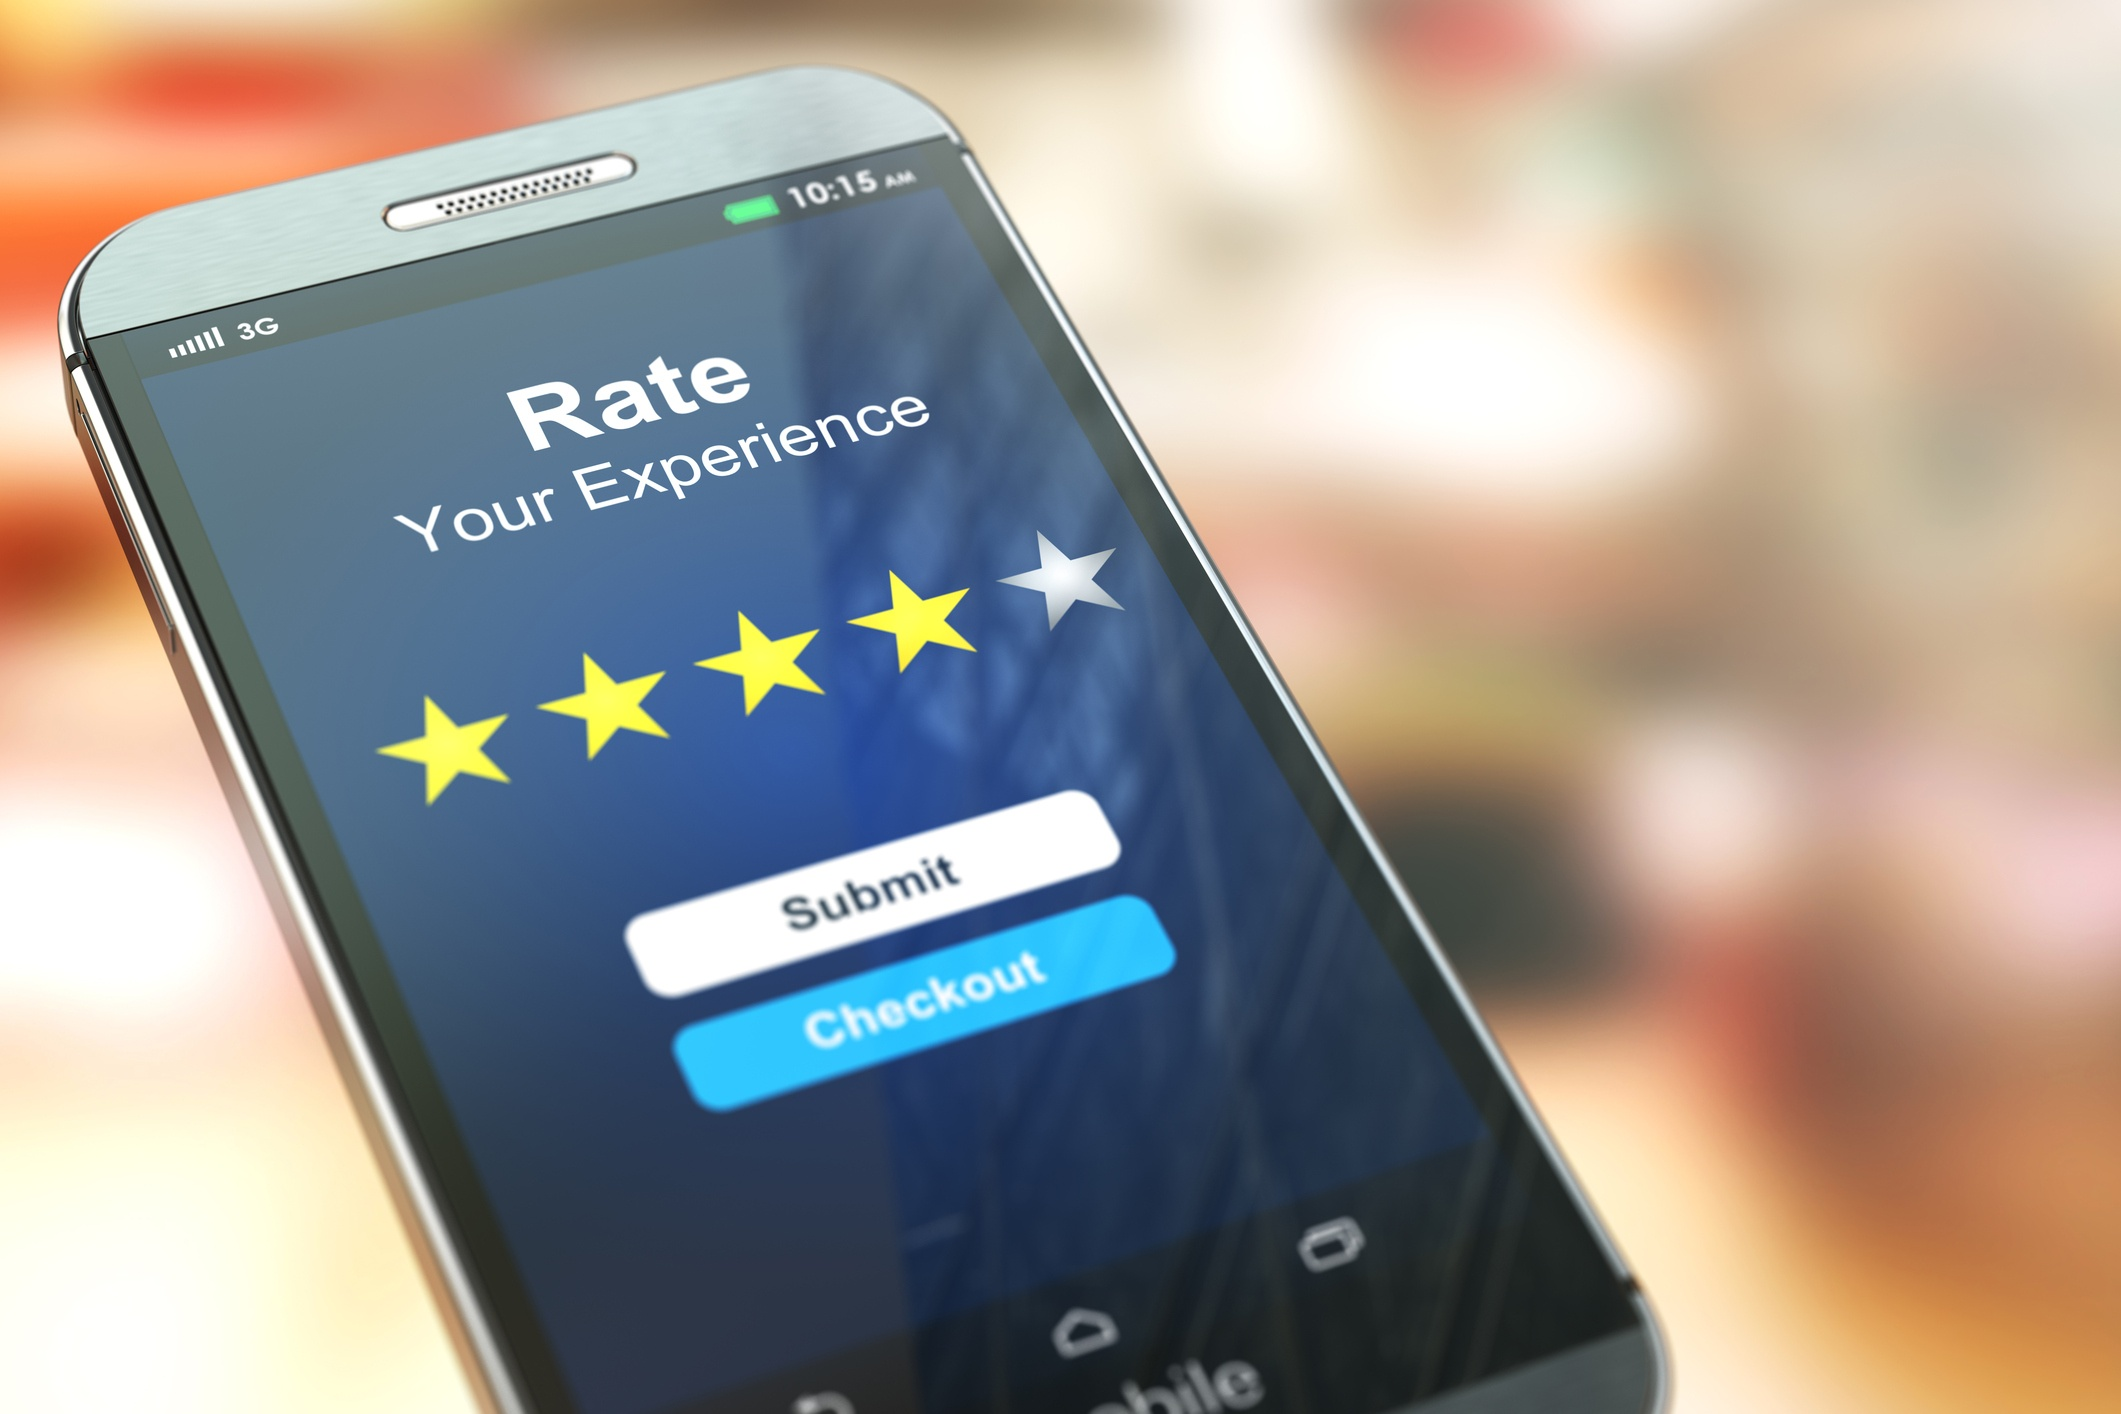 3-simple-tips-how-to-get-rid-of-your-restaurant-bad-yelp-reviews.jpg